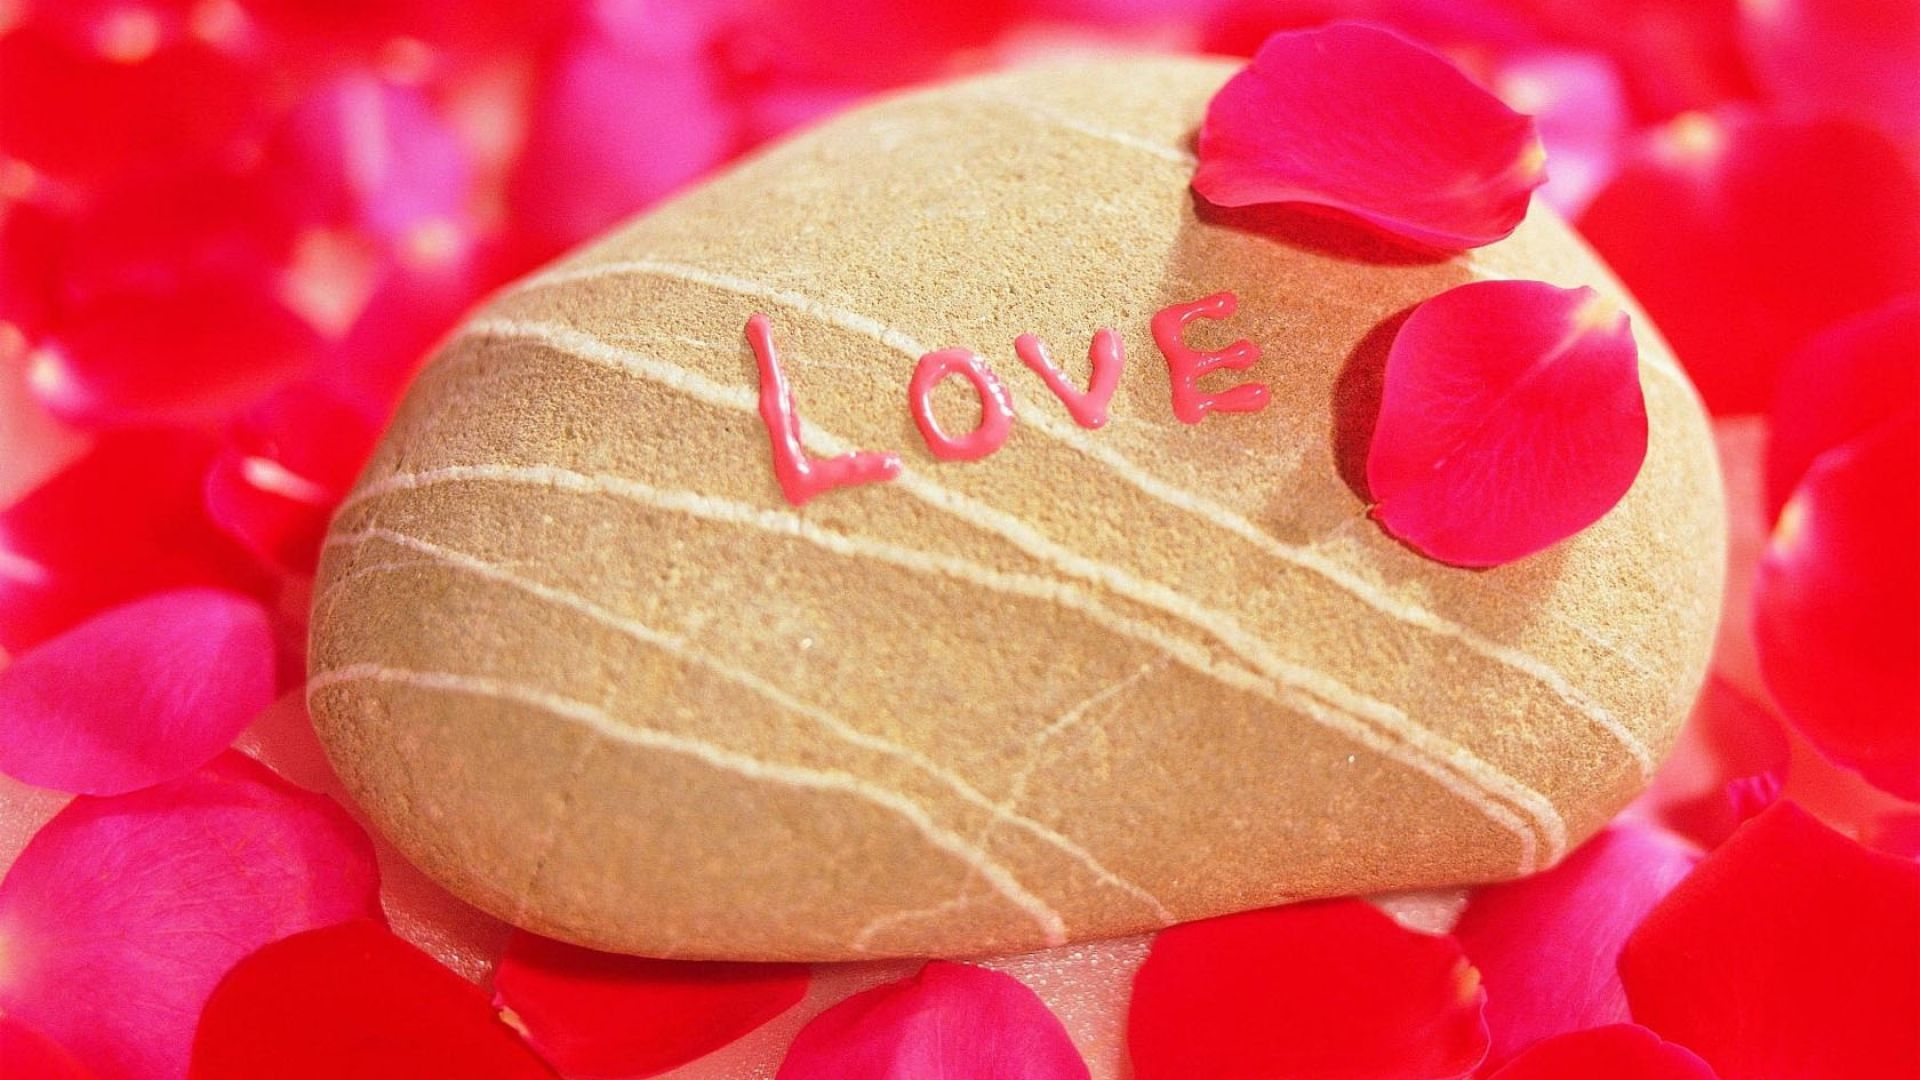 love, stone, shell - http://www.wallpapers4u.org/love-stone-shell/